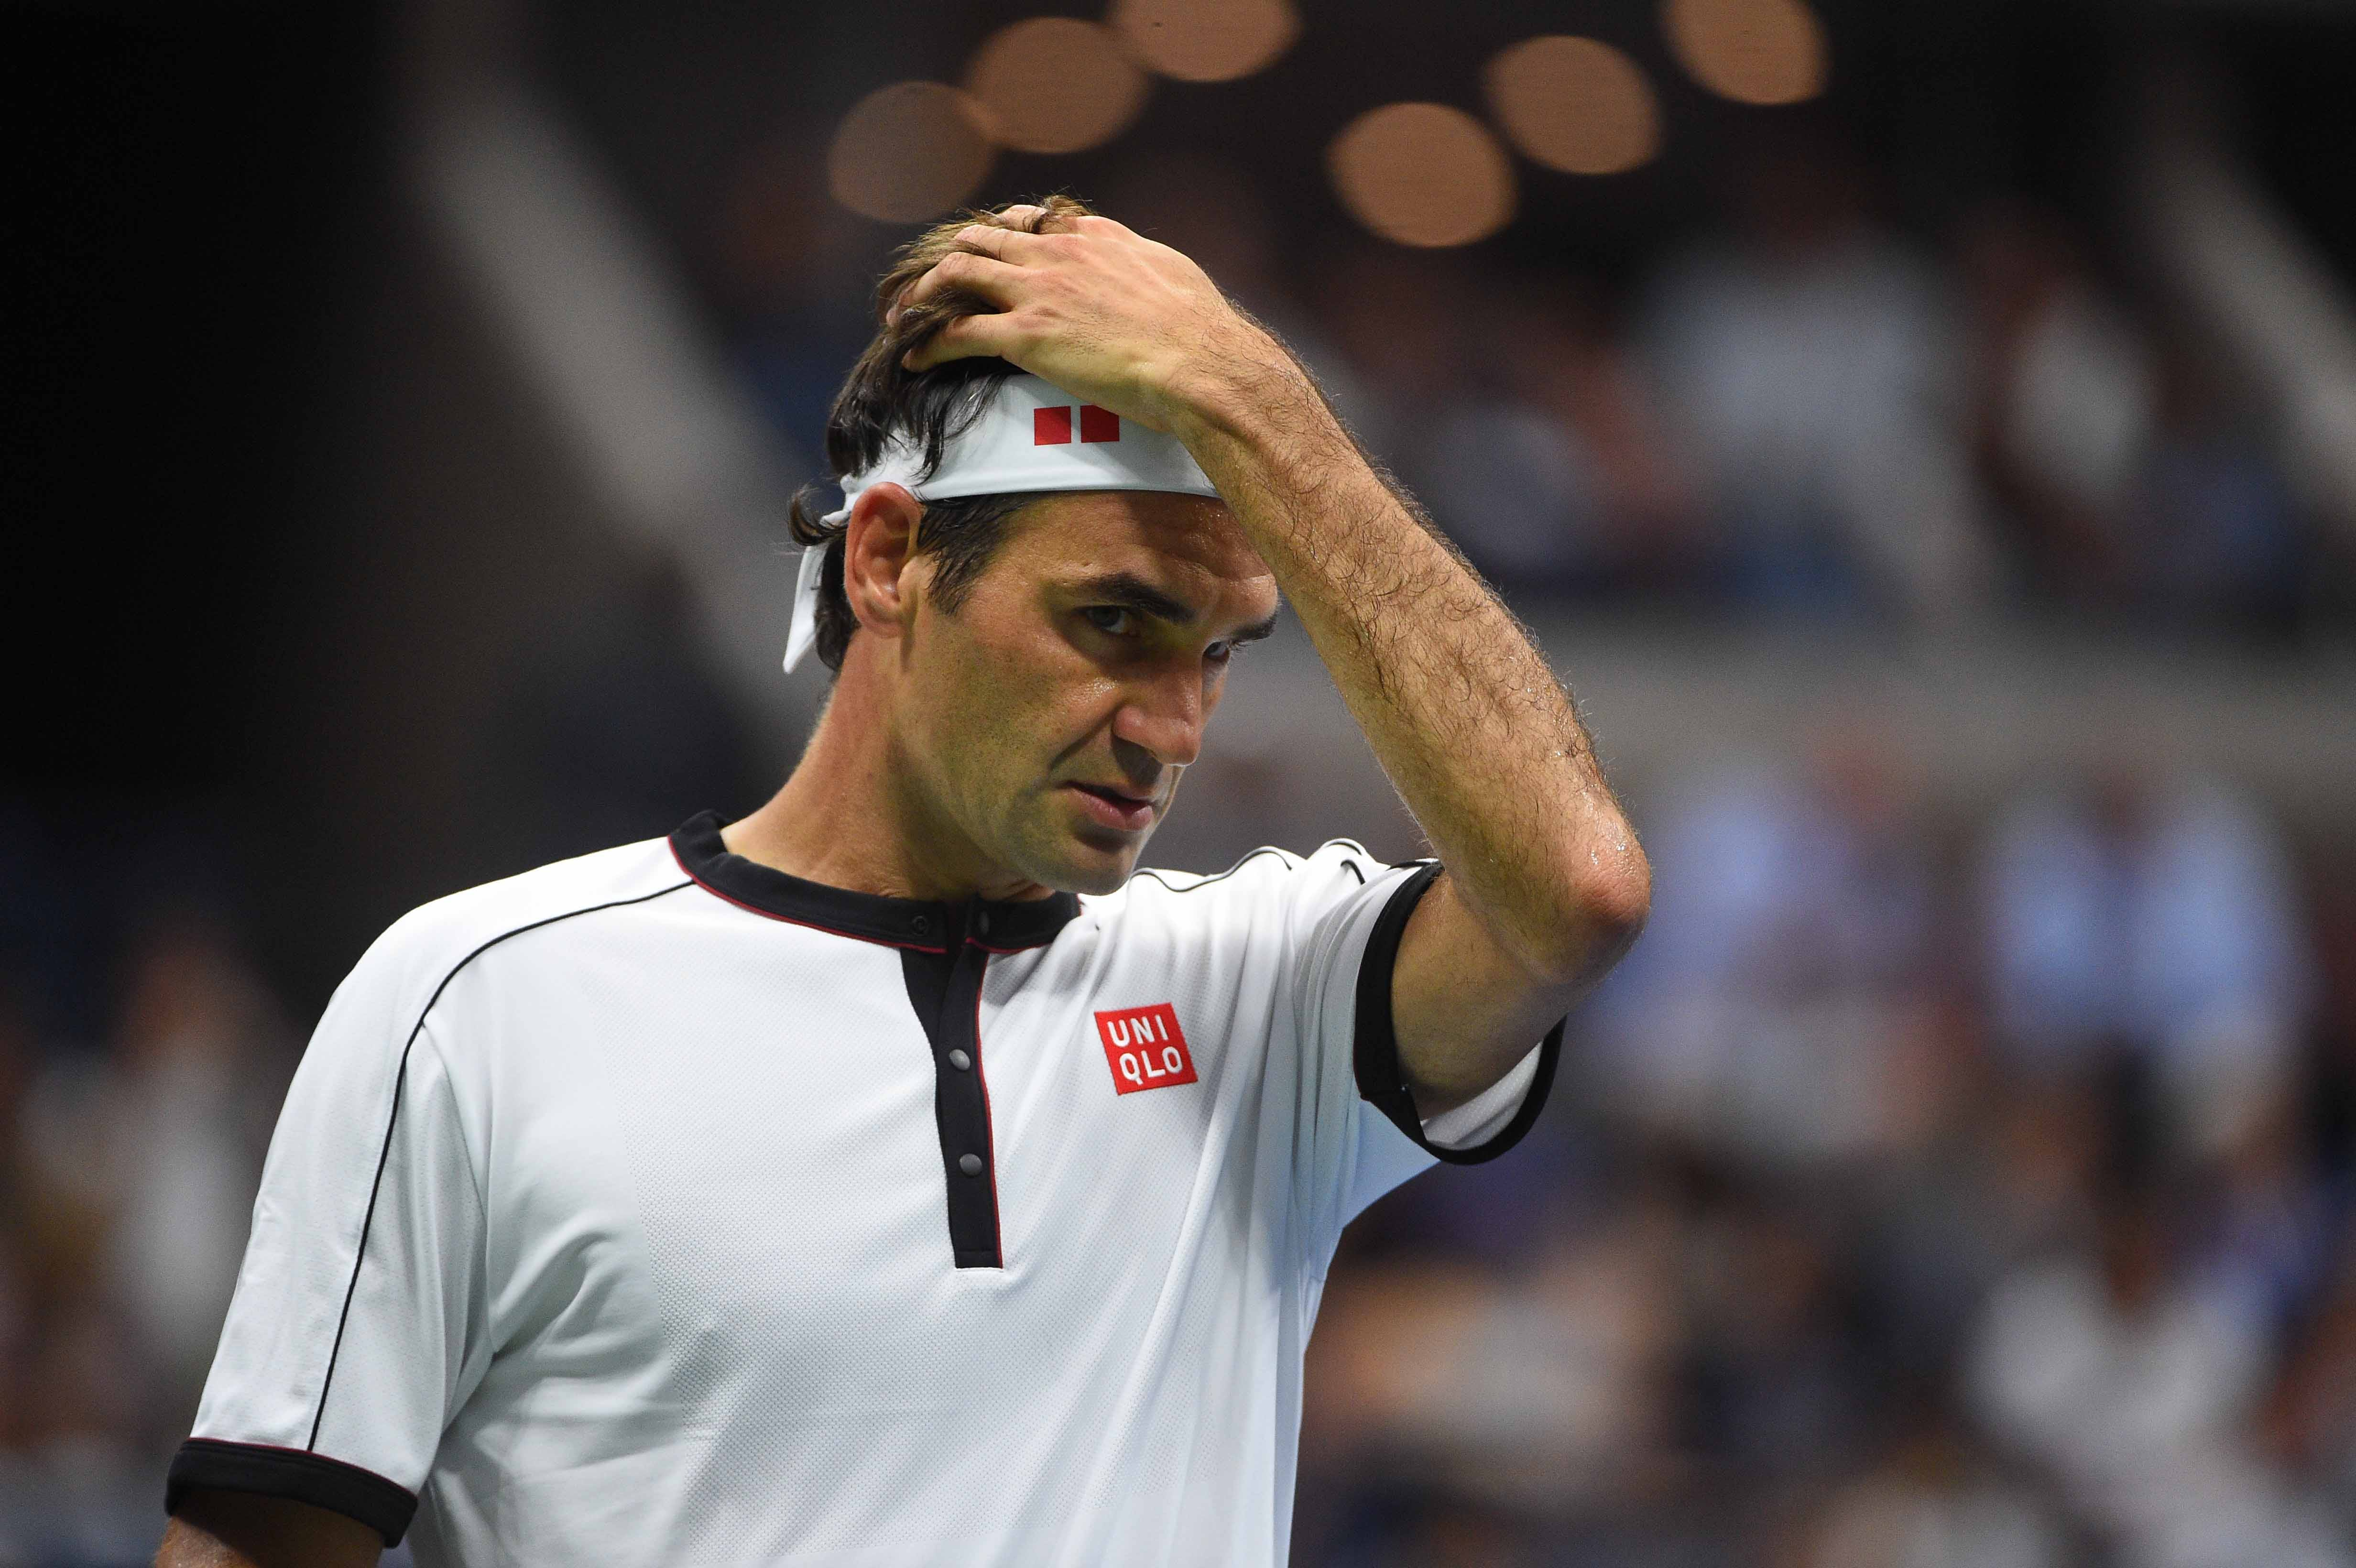 Roger Federer looking concerned durinh his second round match at the 2019 US Open